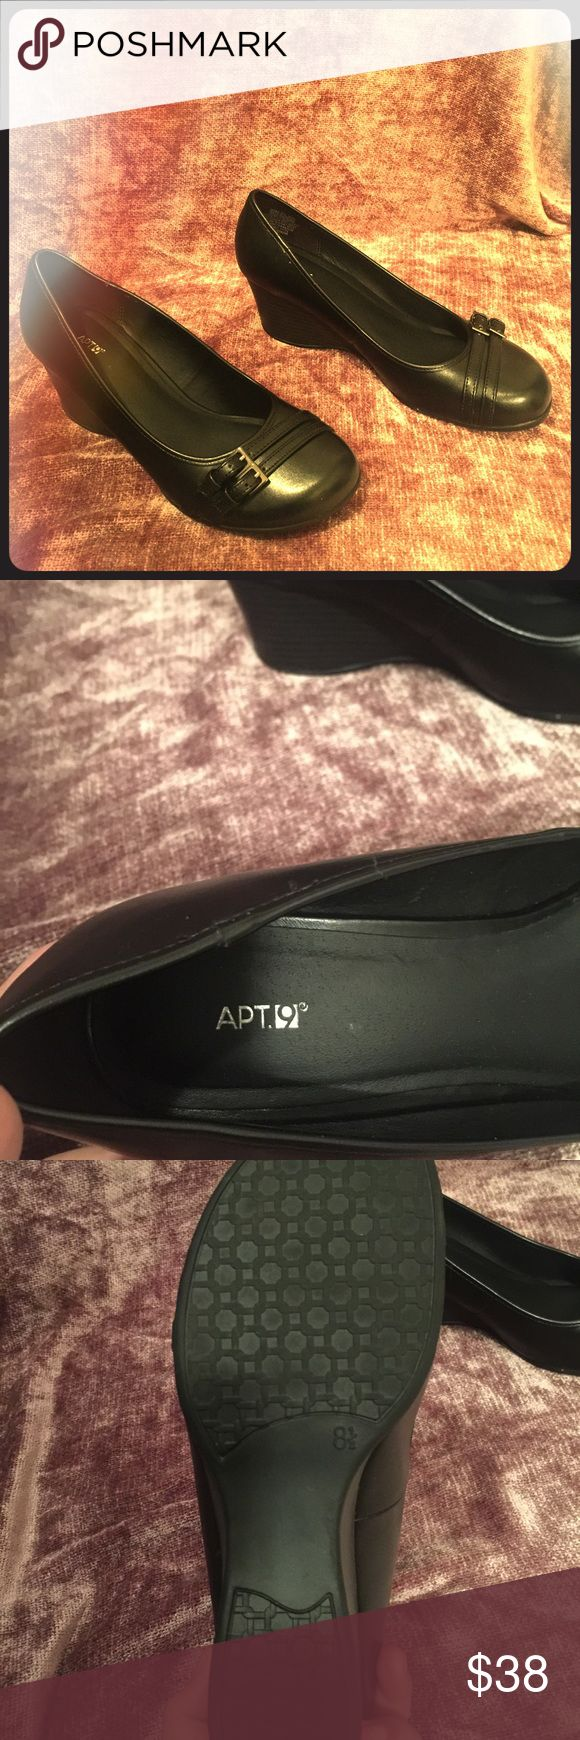 Apt 9 Black Wedge Shoes Only worn twice. Super cute wedges in black. In PERFECT condition! 👠 Apt. 9 Shoes Wedges